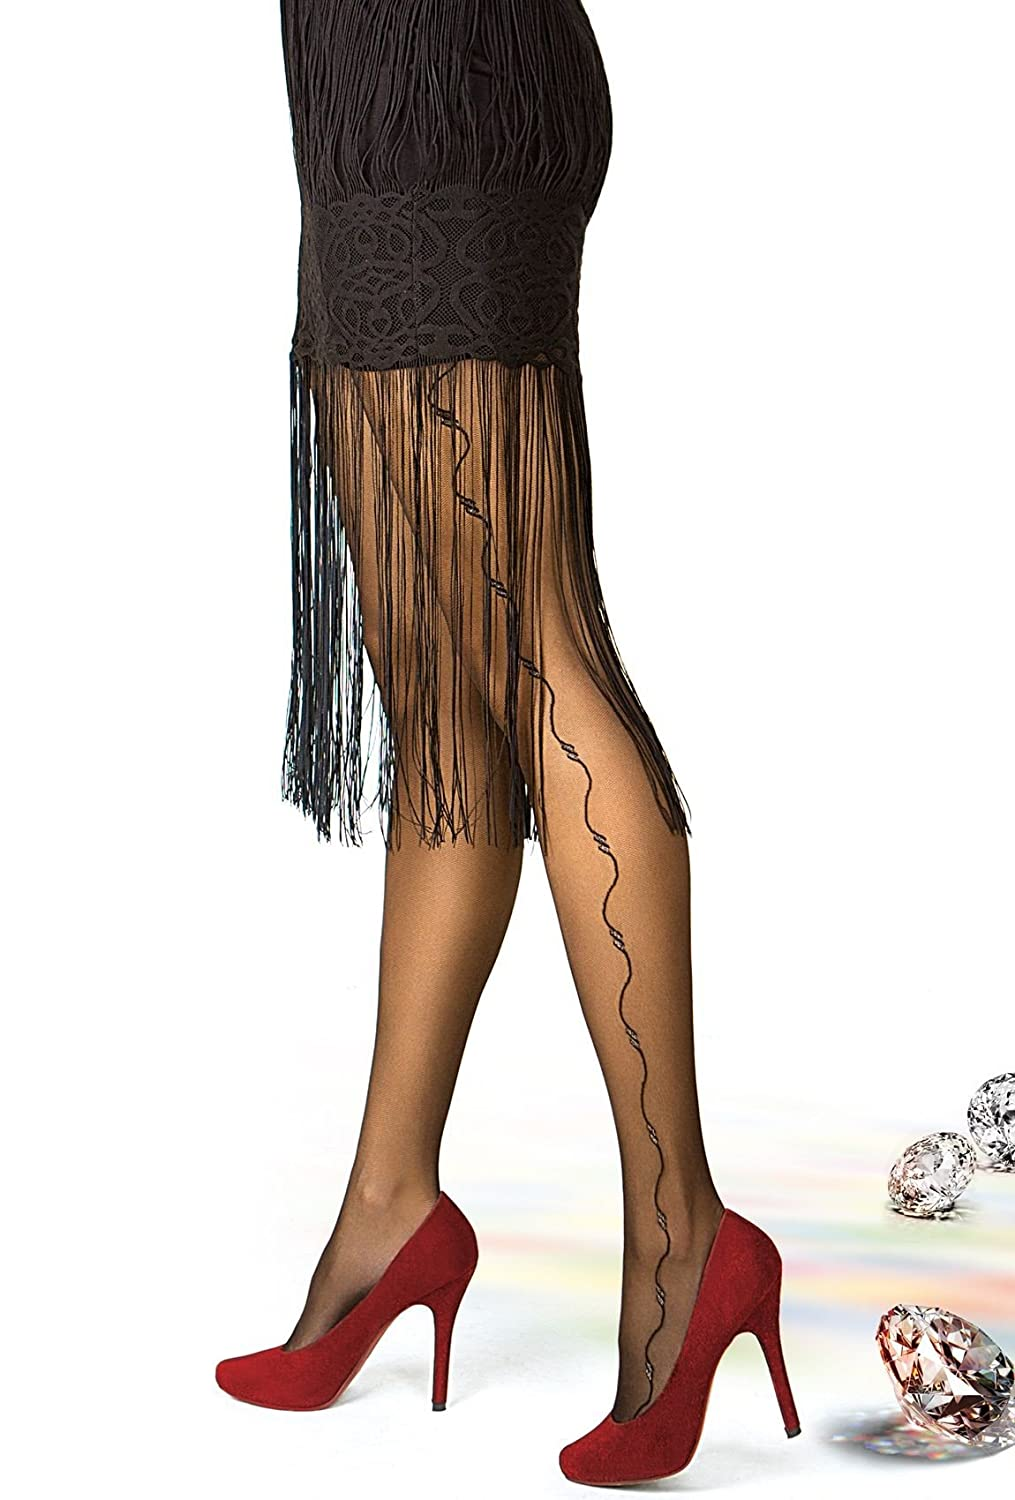 d76c12028622e Sheer Patterned Black Tights Pantyhose Hosiery for Women 😍 Gatta RONNA 26  [Made in Europe] at Amazon Women's Clothing store: